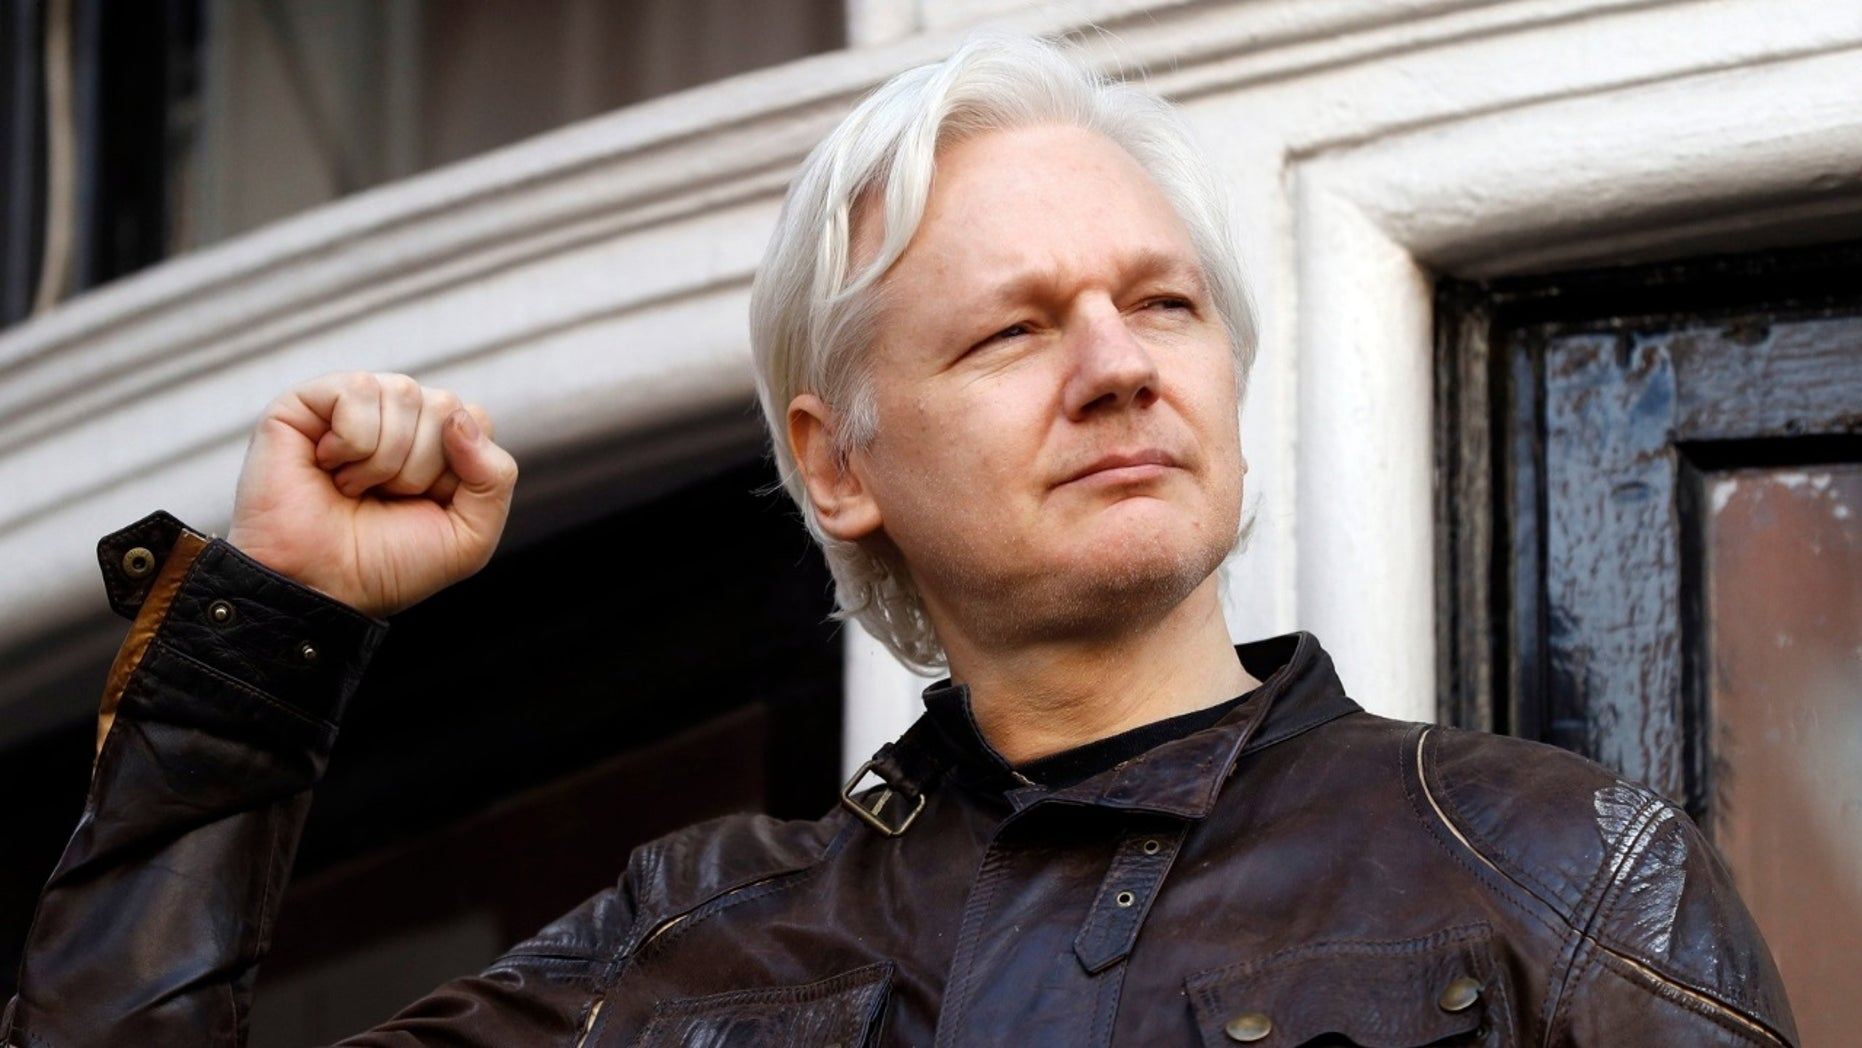 Julian Assange says Ecuador is trying to end his asylum